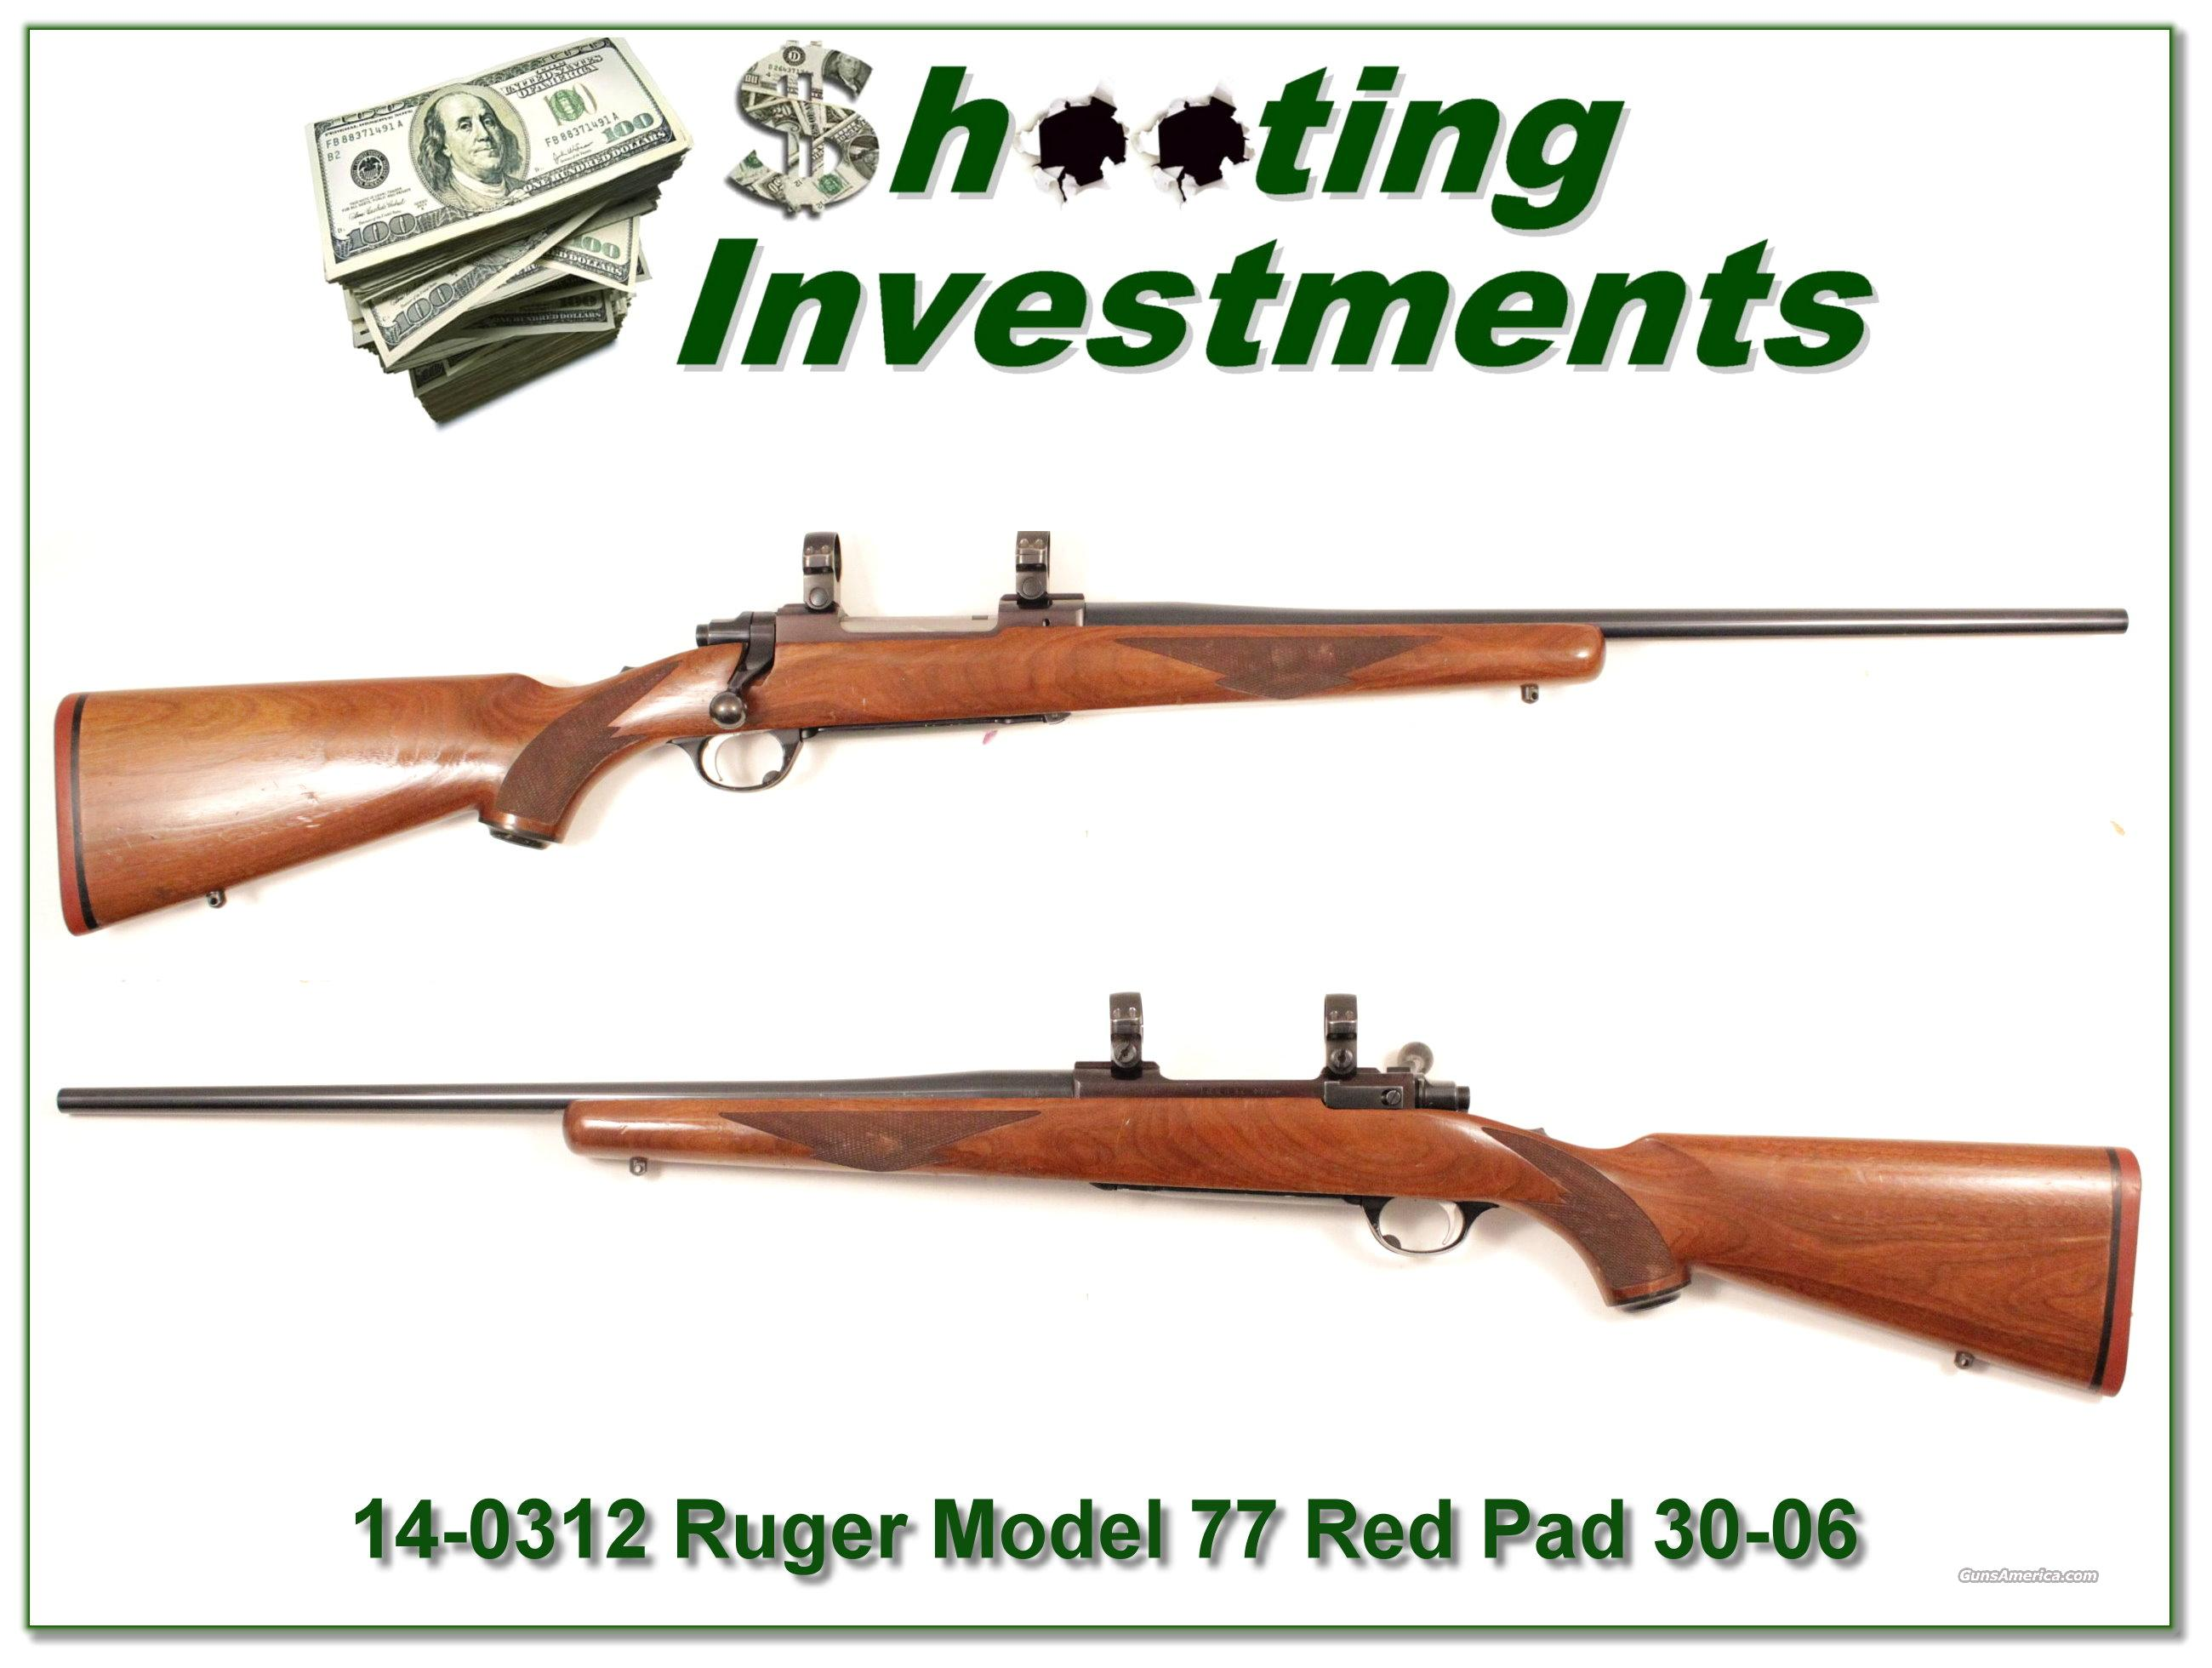 Ruger Model 77 30-06 Tang Safety Red Pad!  Guns > Rifles > Ruger Rifles > Model 77